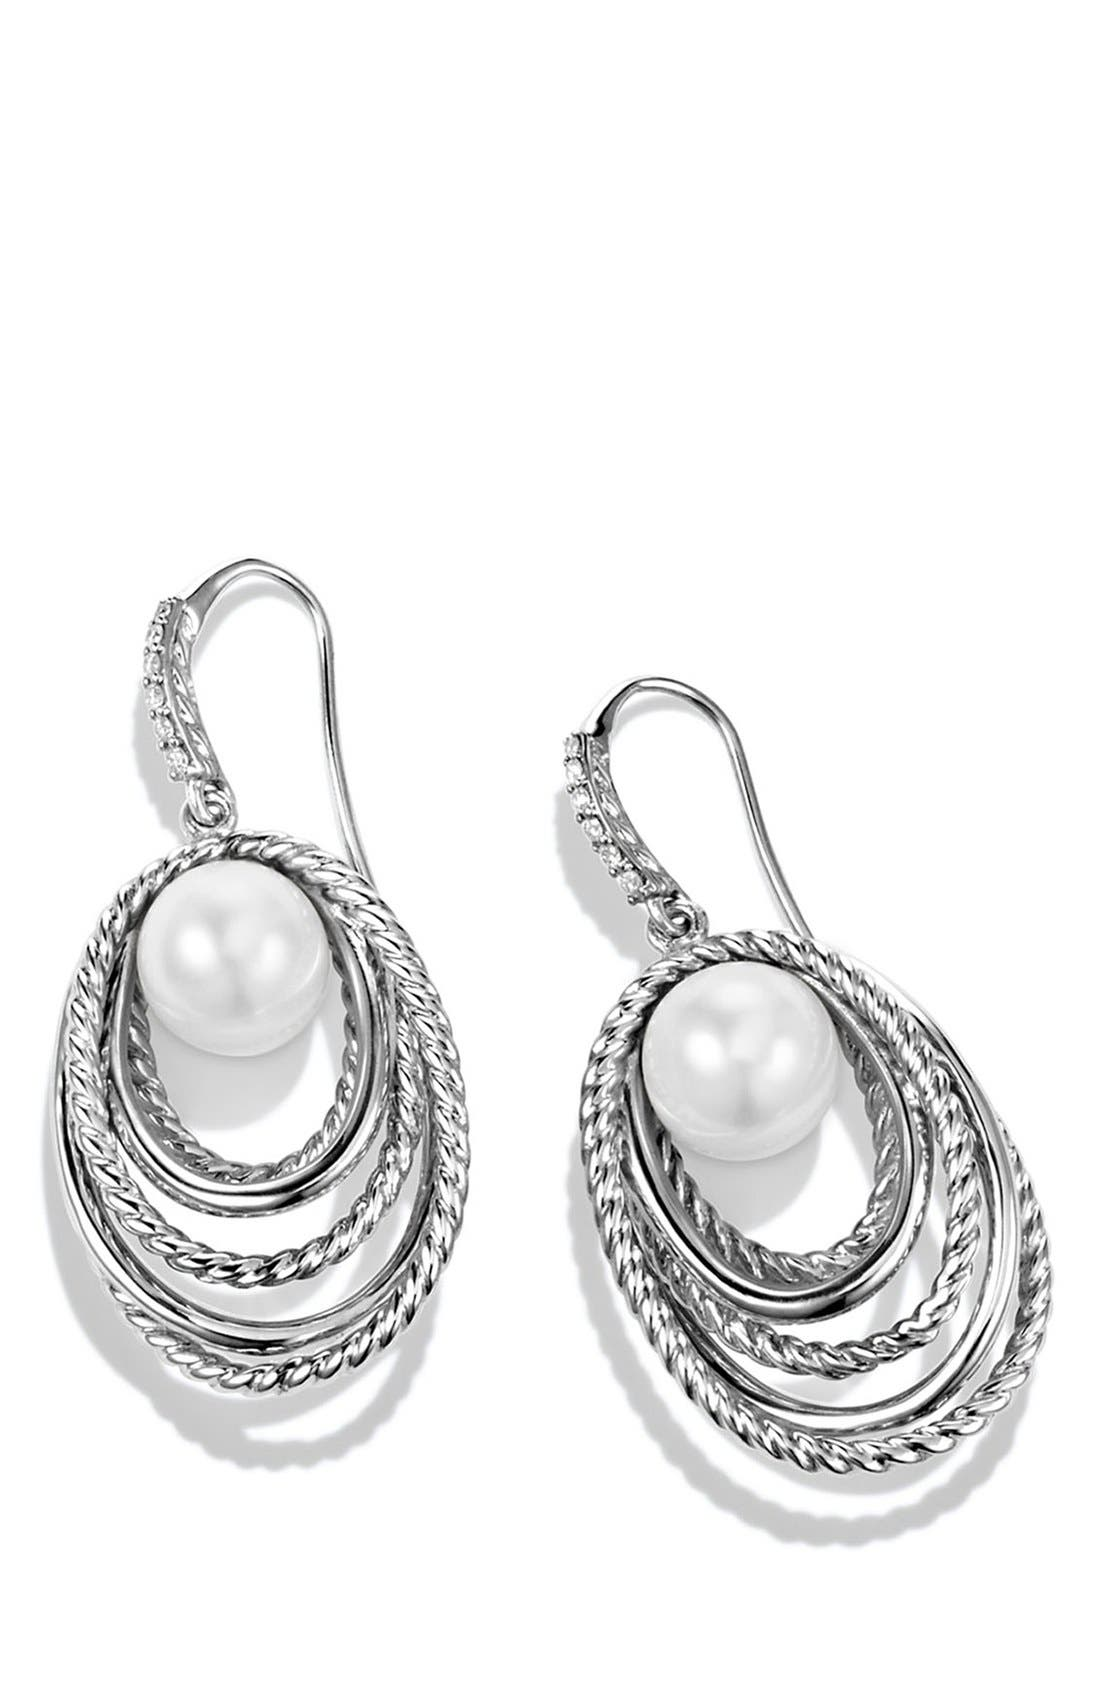 'Crossover' Pearl Drop Earrings with Diamonds,                             Alternate thumbnail 2, color,                             101